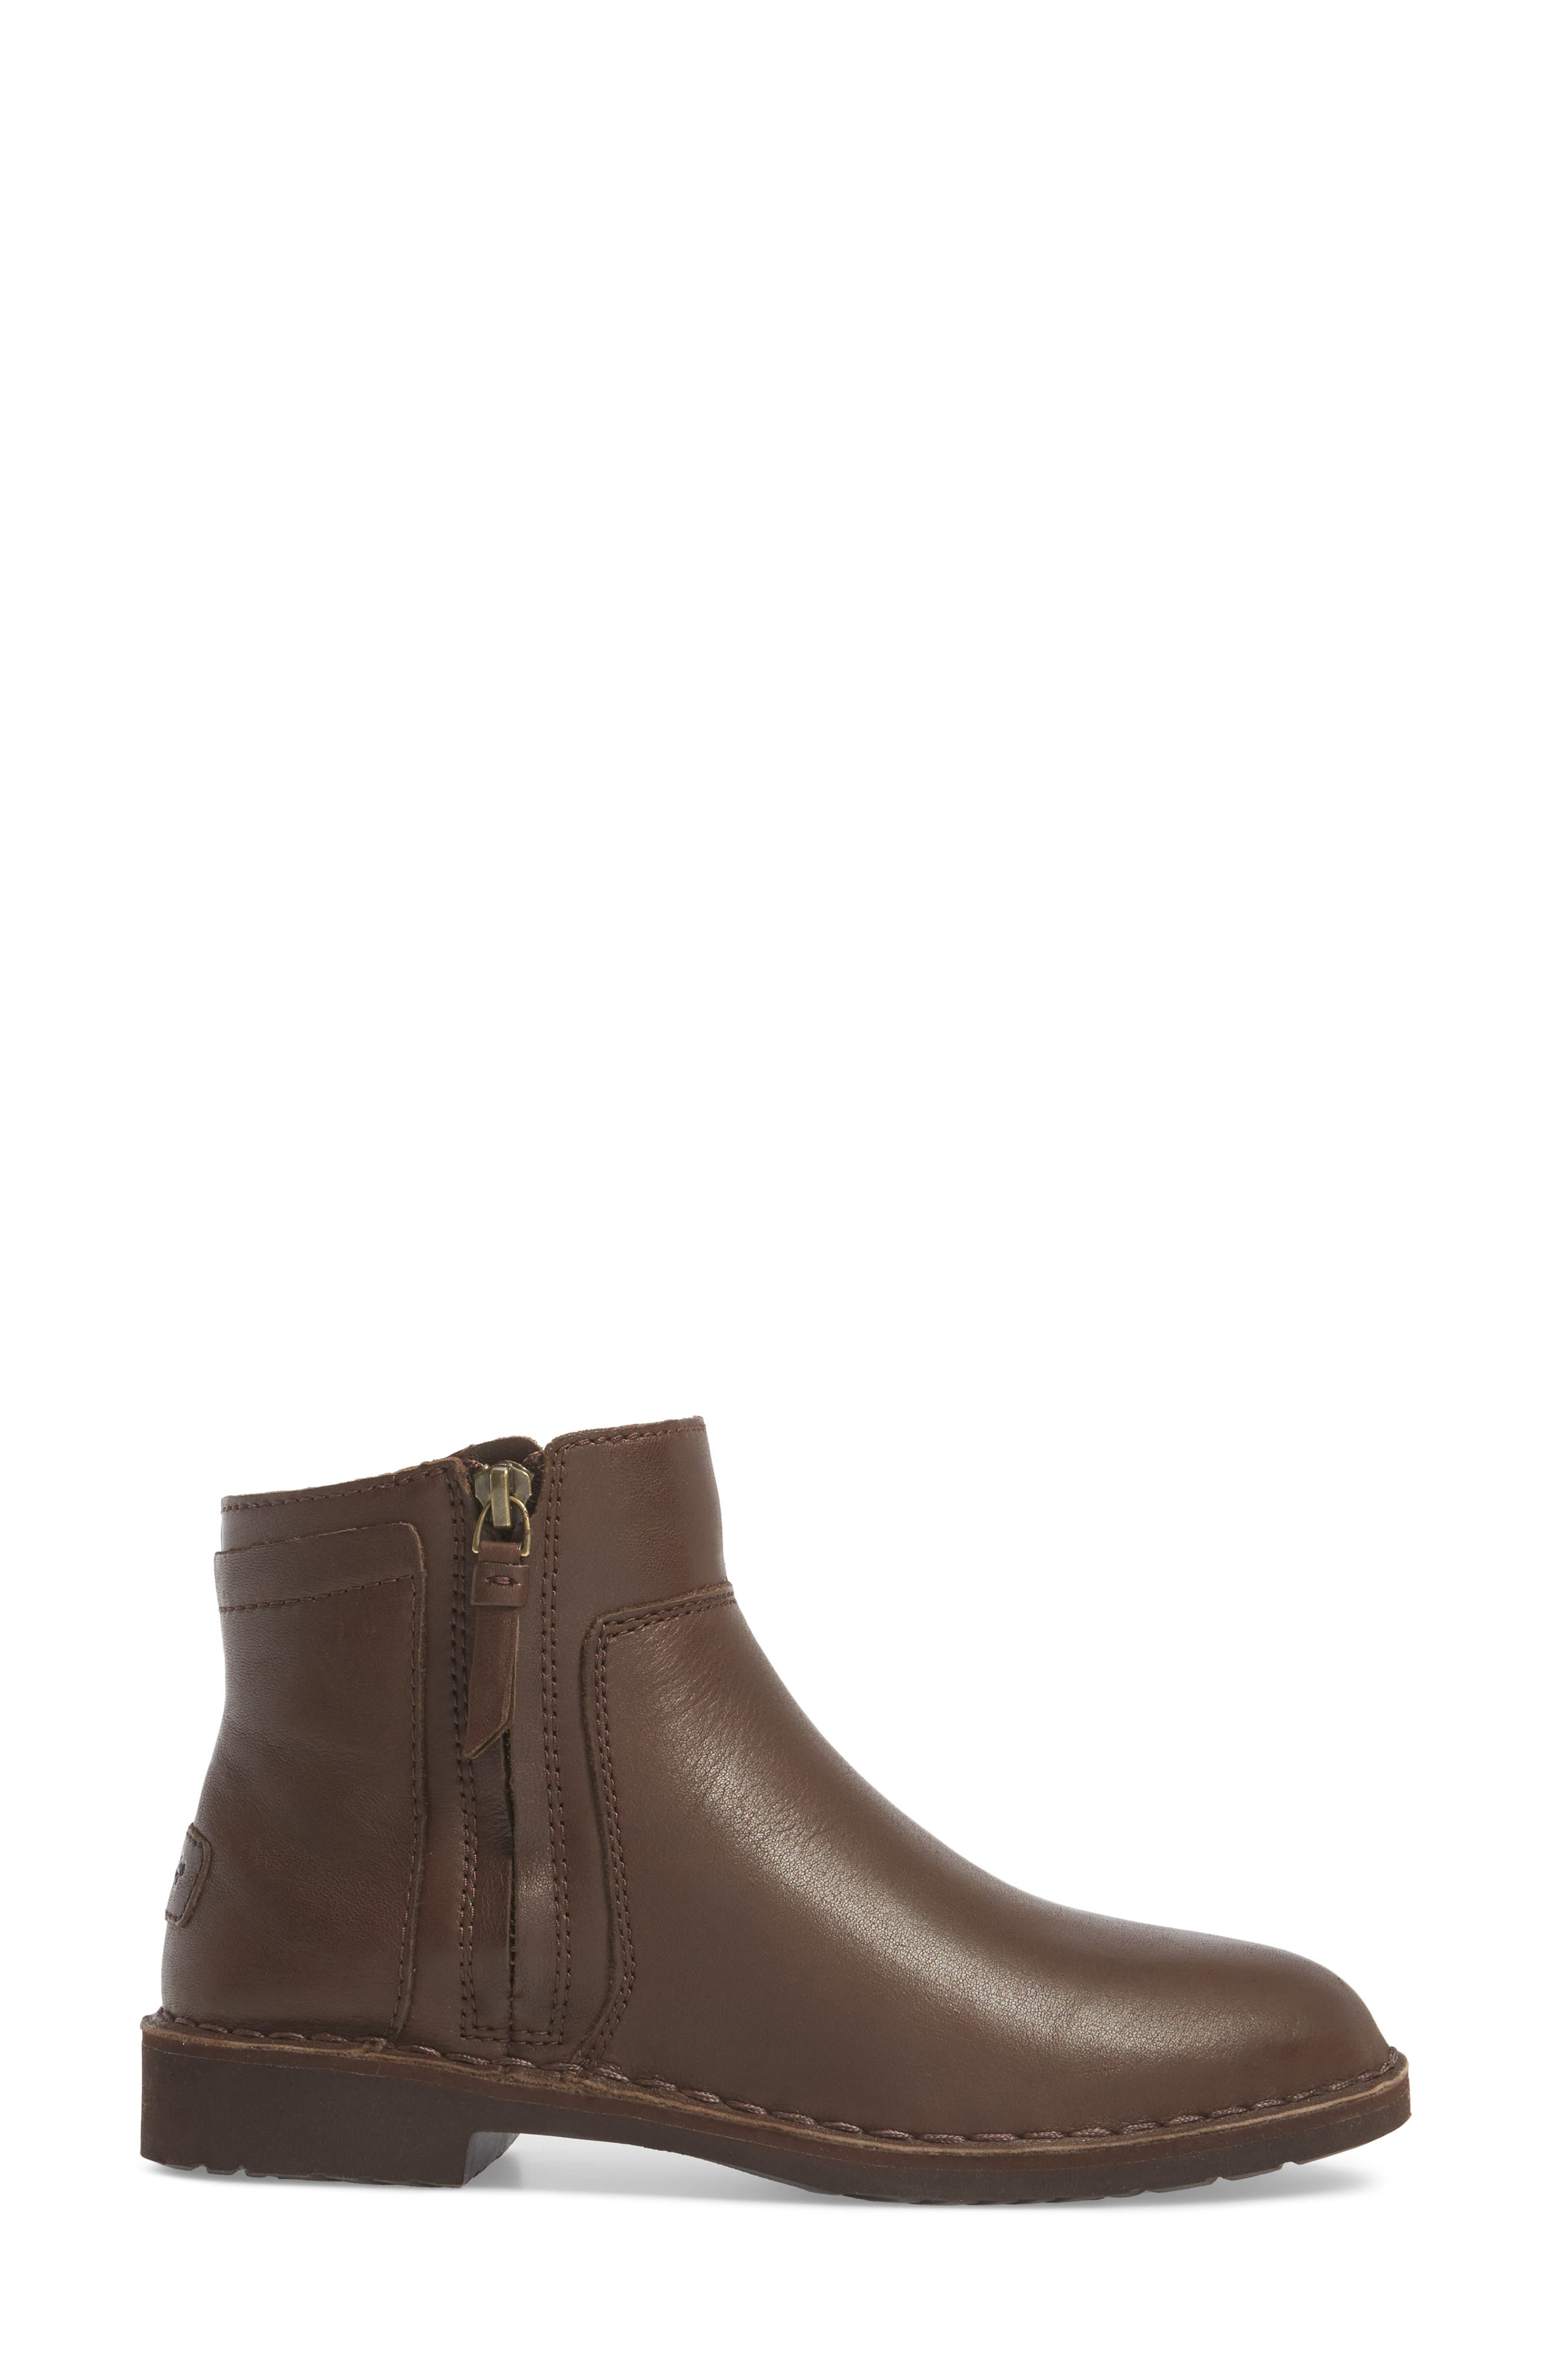 Rea Bootie,                             Alternate thumbnail 3, color,                             Stout Leather